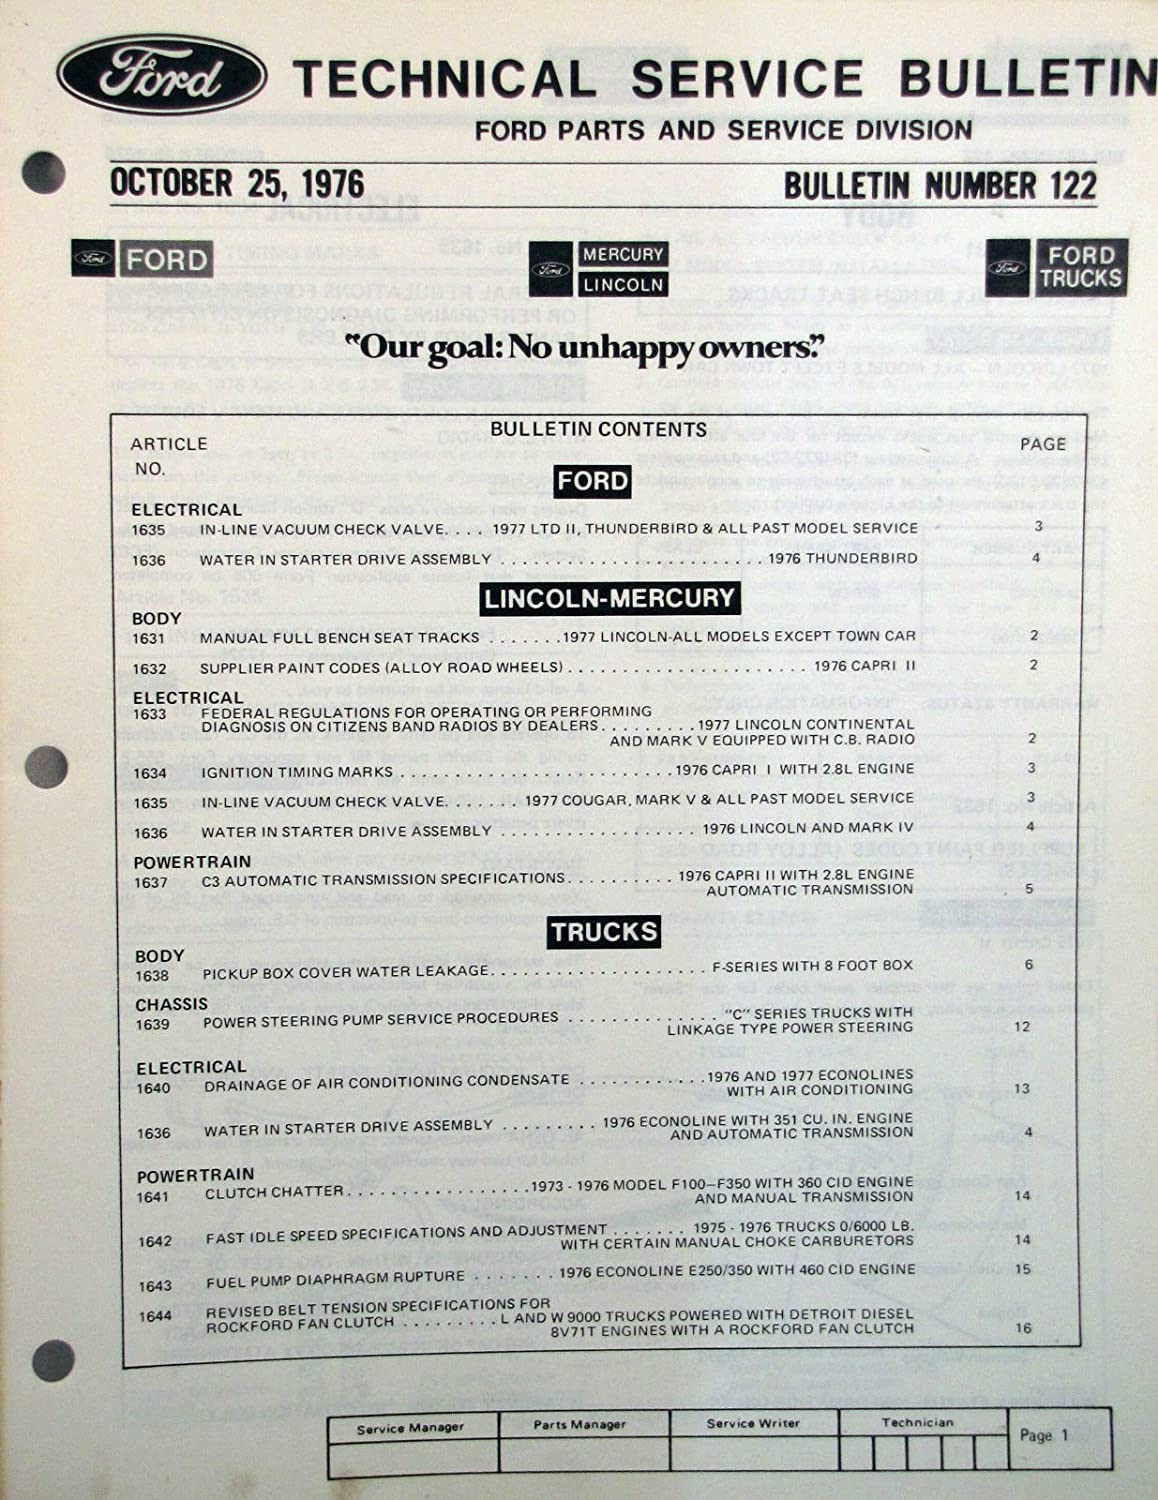 Amazon.com : Ford Technical Service Bulletin #122 dated October 25, 1976 :  Everything Else